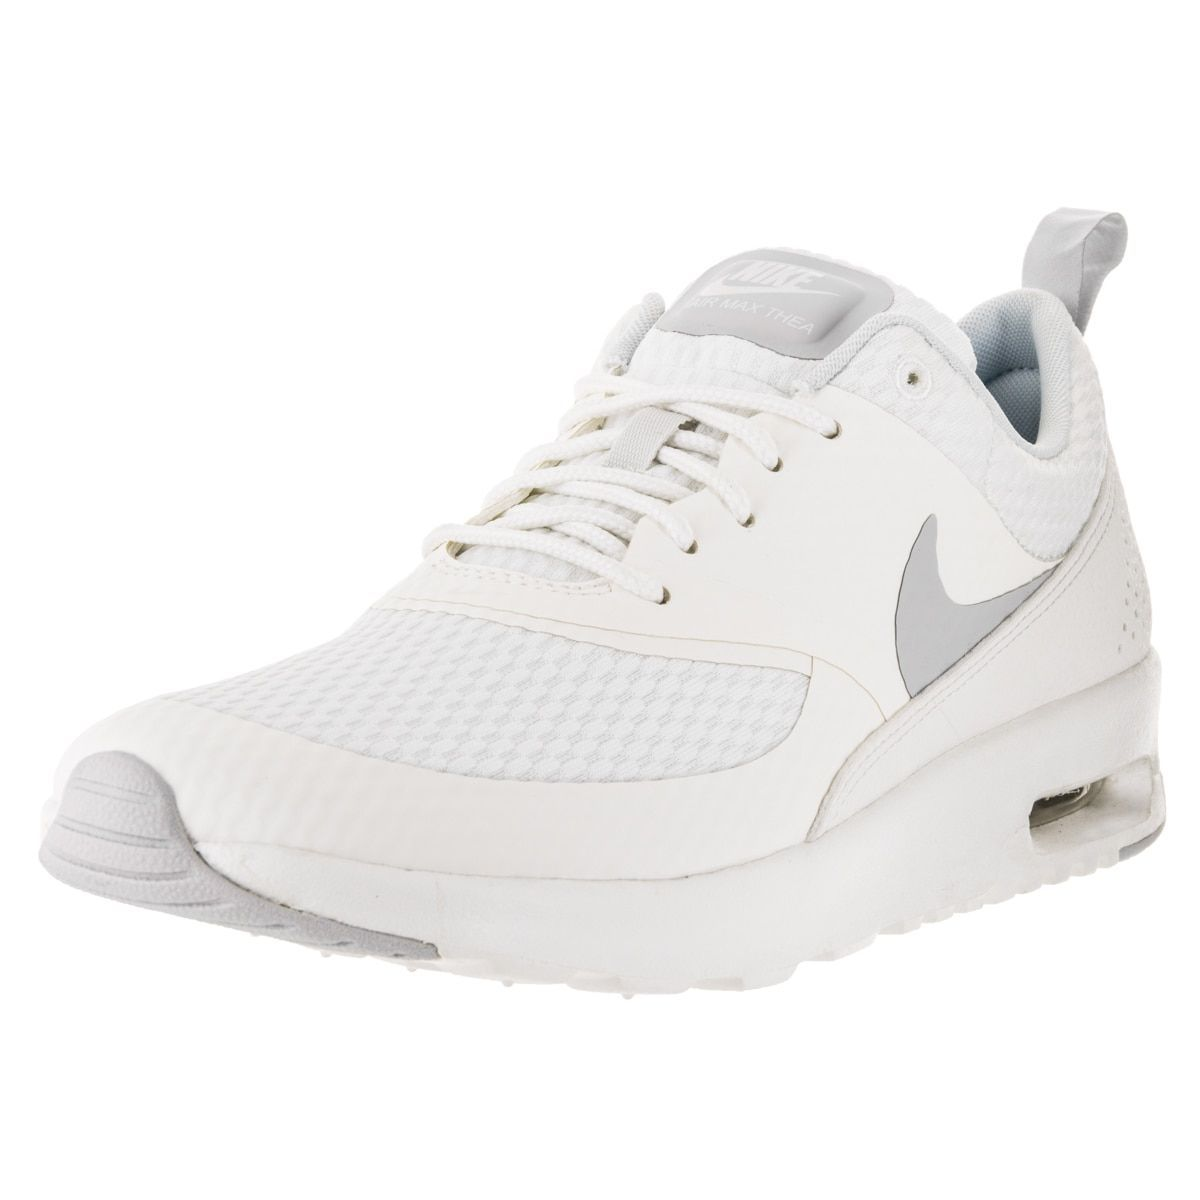 check out de977 34387 Nike Women s Air Max Thea TXT Summit  Pure Platinum Running Shoe